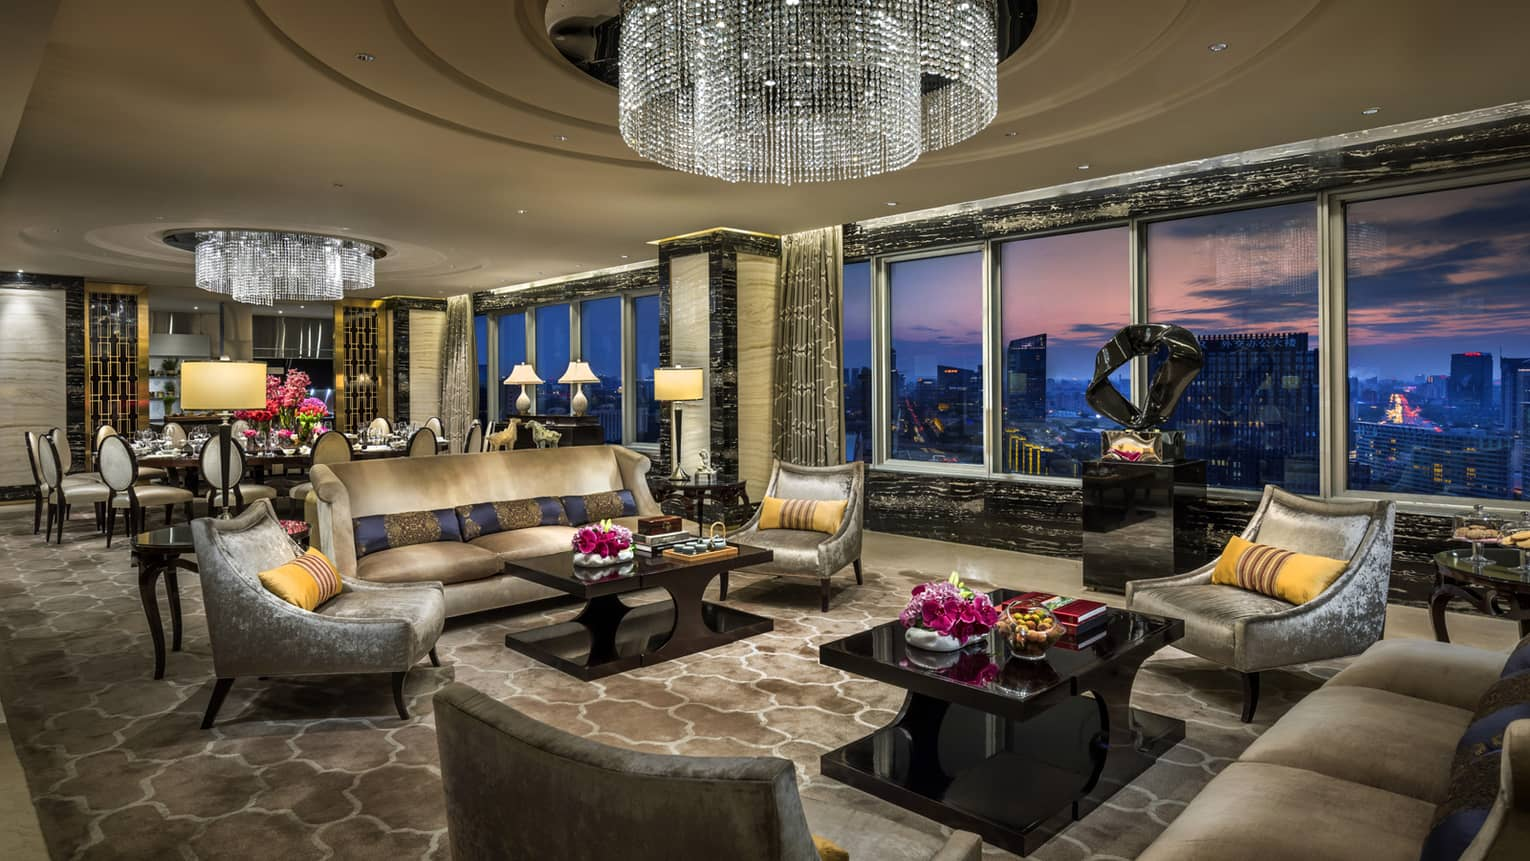 Imperial Suite luxurious living room with sofas, armchairs under large crystal chandeliers, floor-to-ceiling windows, sunset views